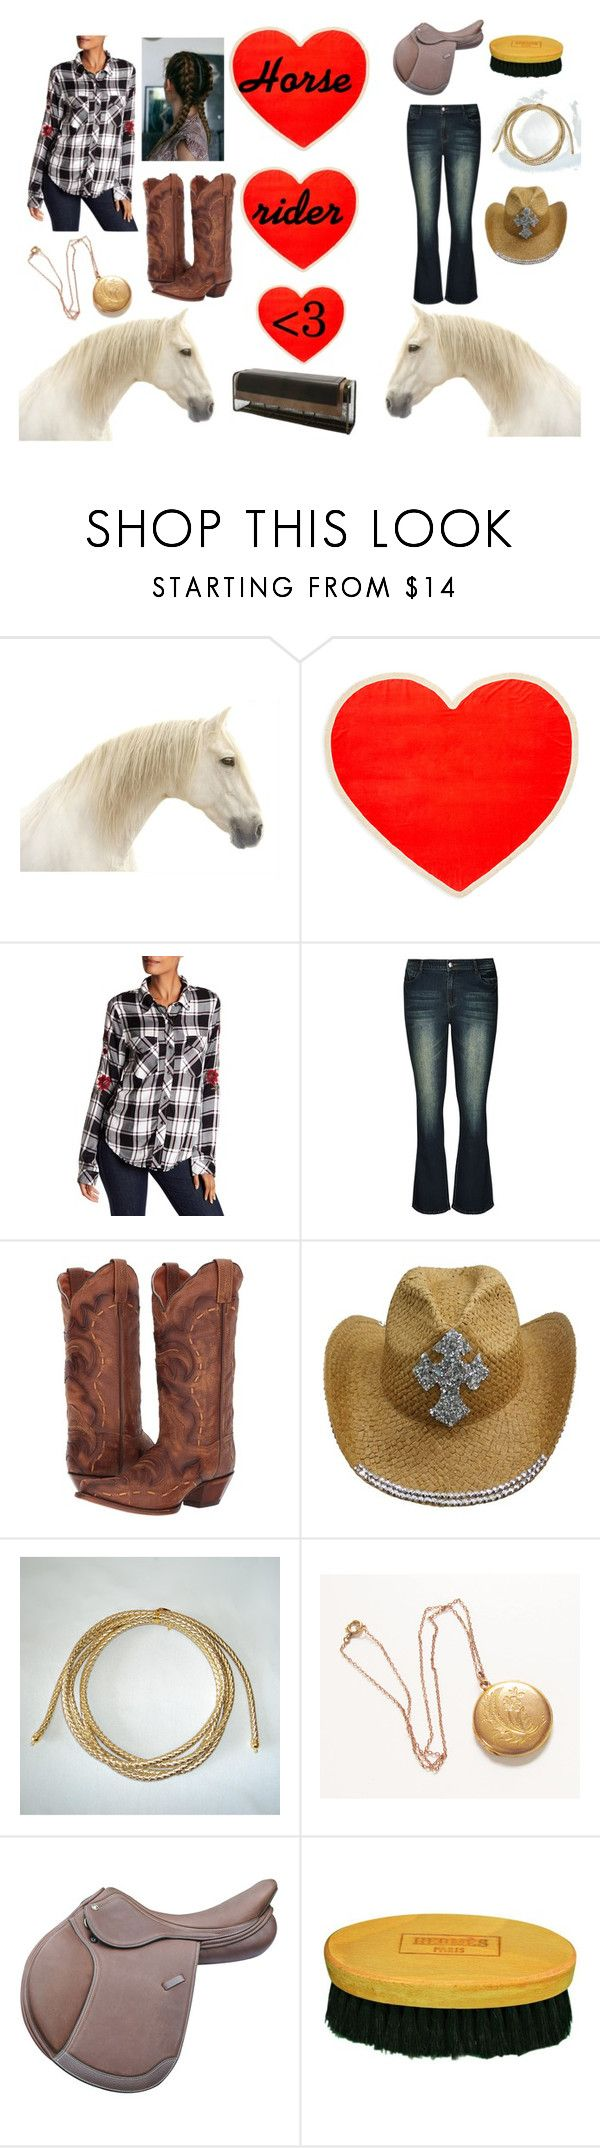 """Horse, Rider, <3"" by huskyluvac on Polyvore featuring ban.do, Sanctuary, City Chic, Dan Post, E + J, Hermès and plus size clothing"